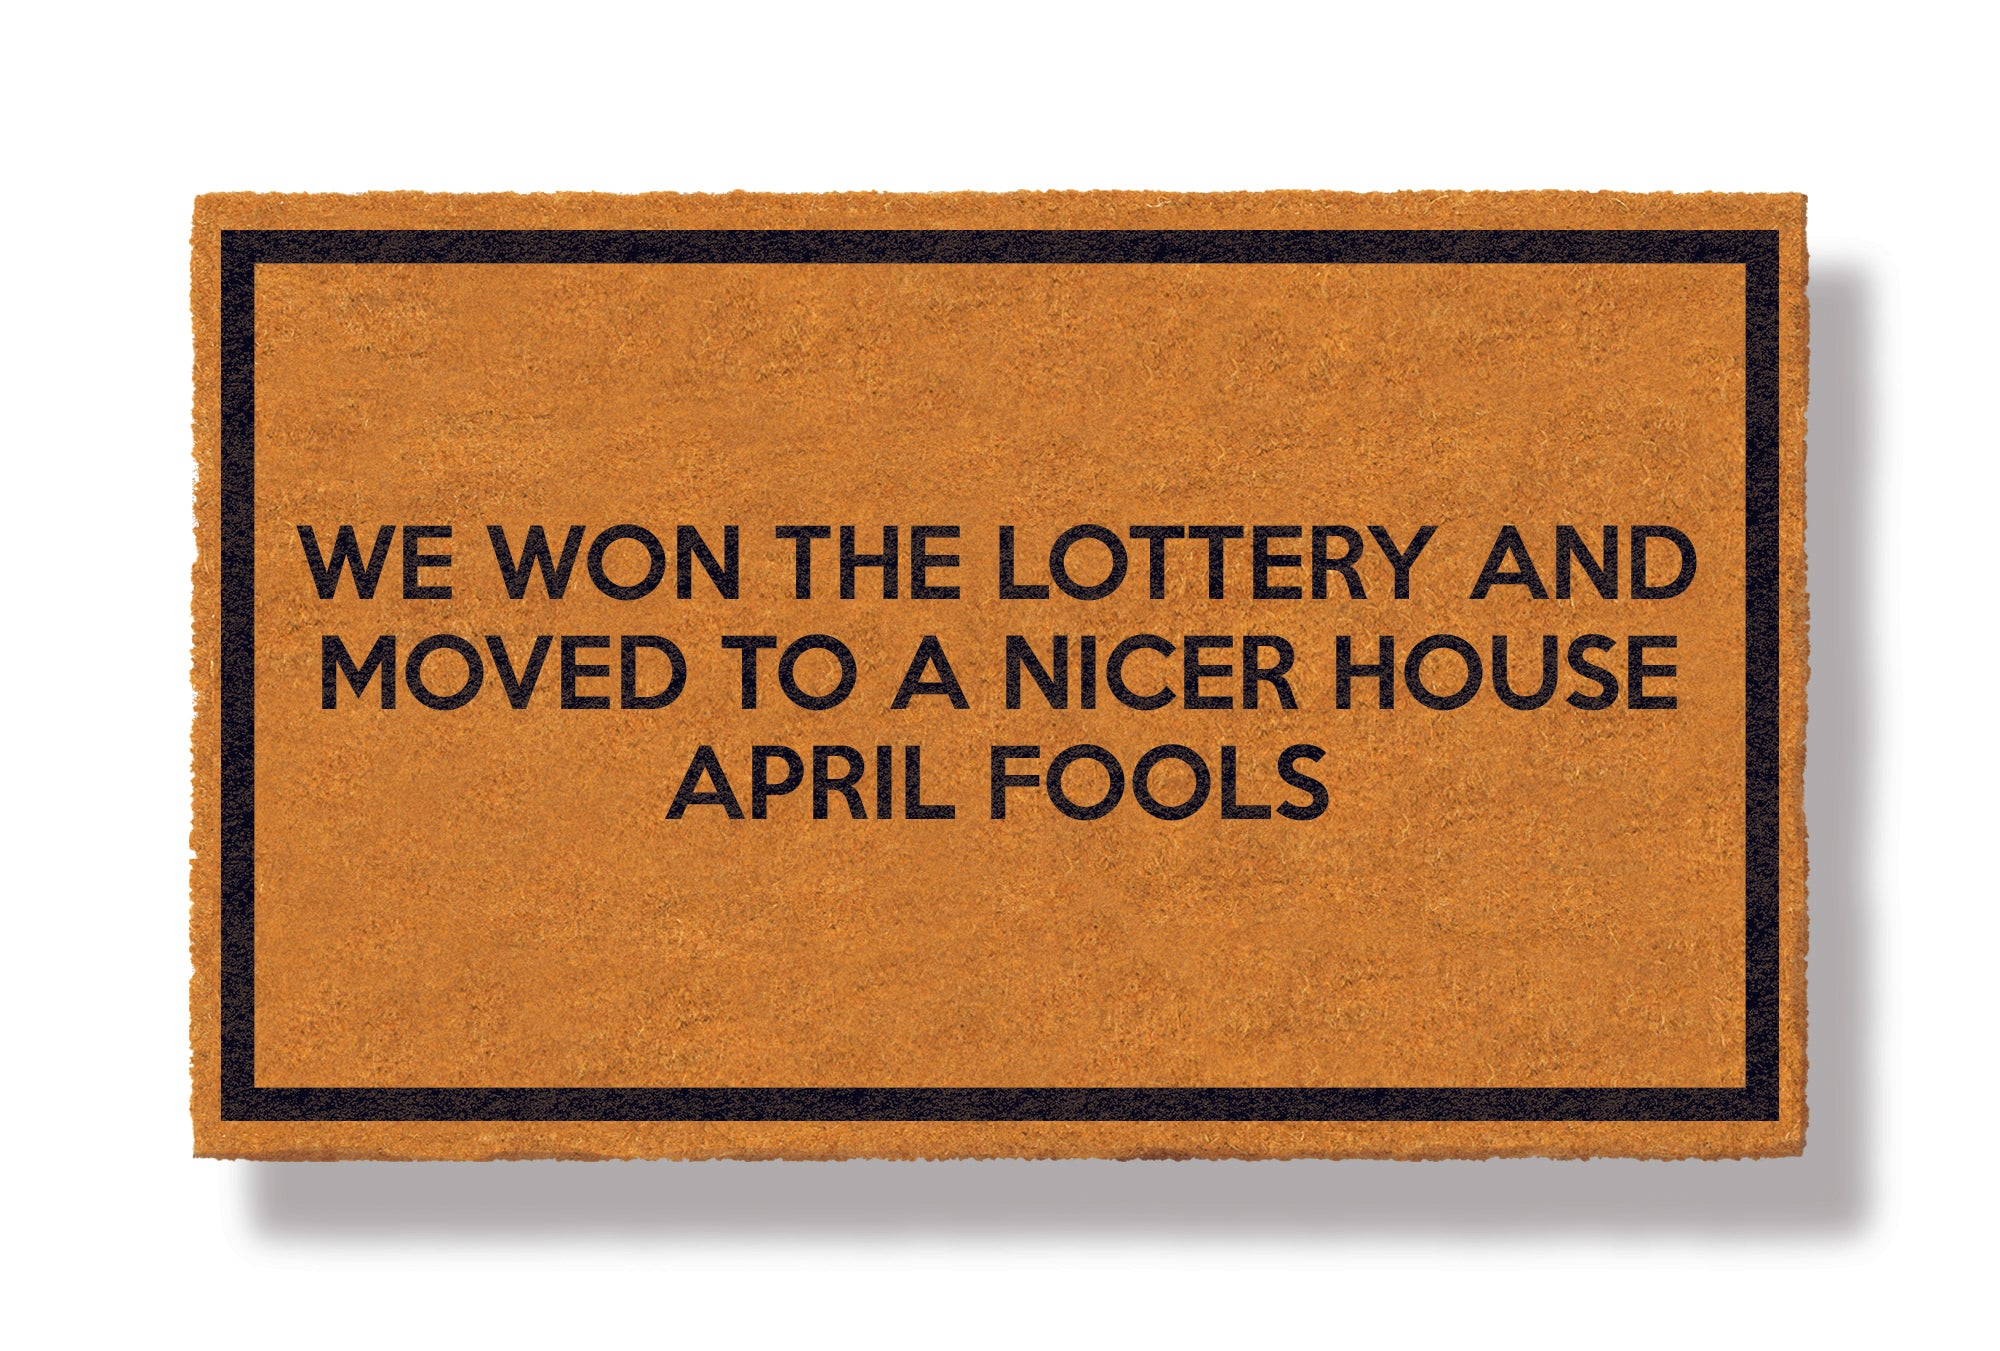 This coir welcome mat is a funny doormat on a white background with a drop shadow. The brown doormat has a black border and has black centered text that reads We Won The Lottery and Moved to a Nicer House APRIL FOOLS.